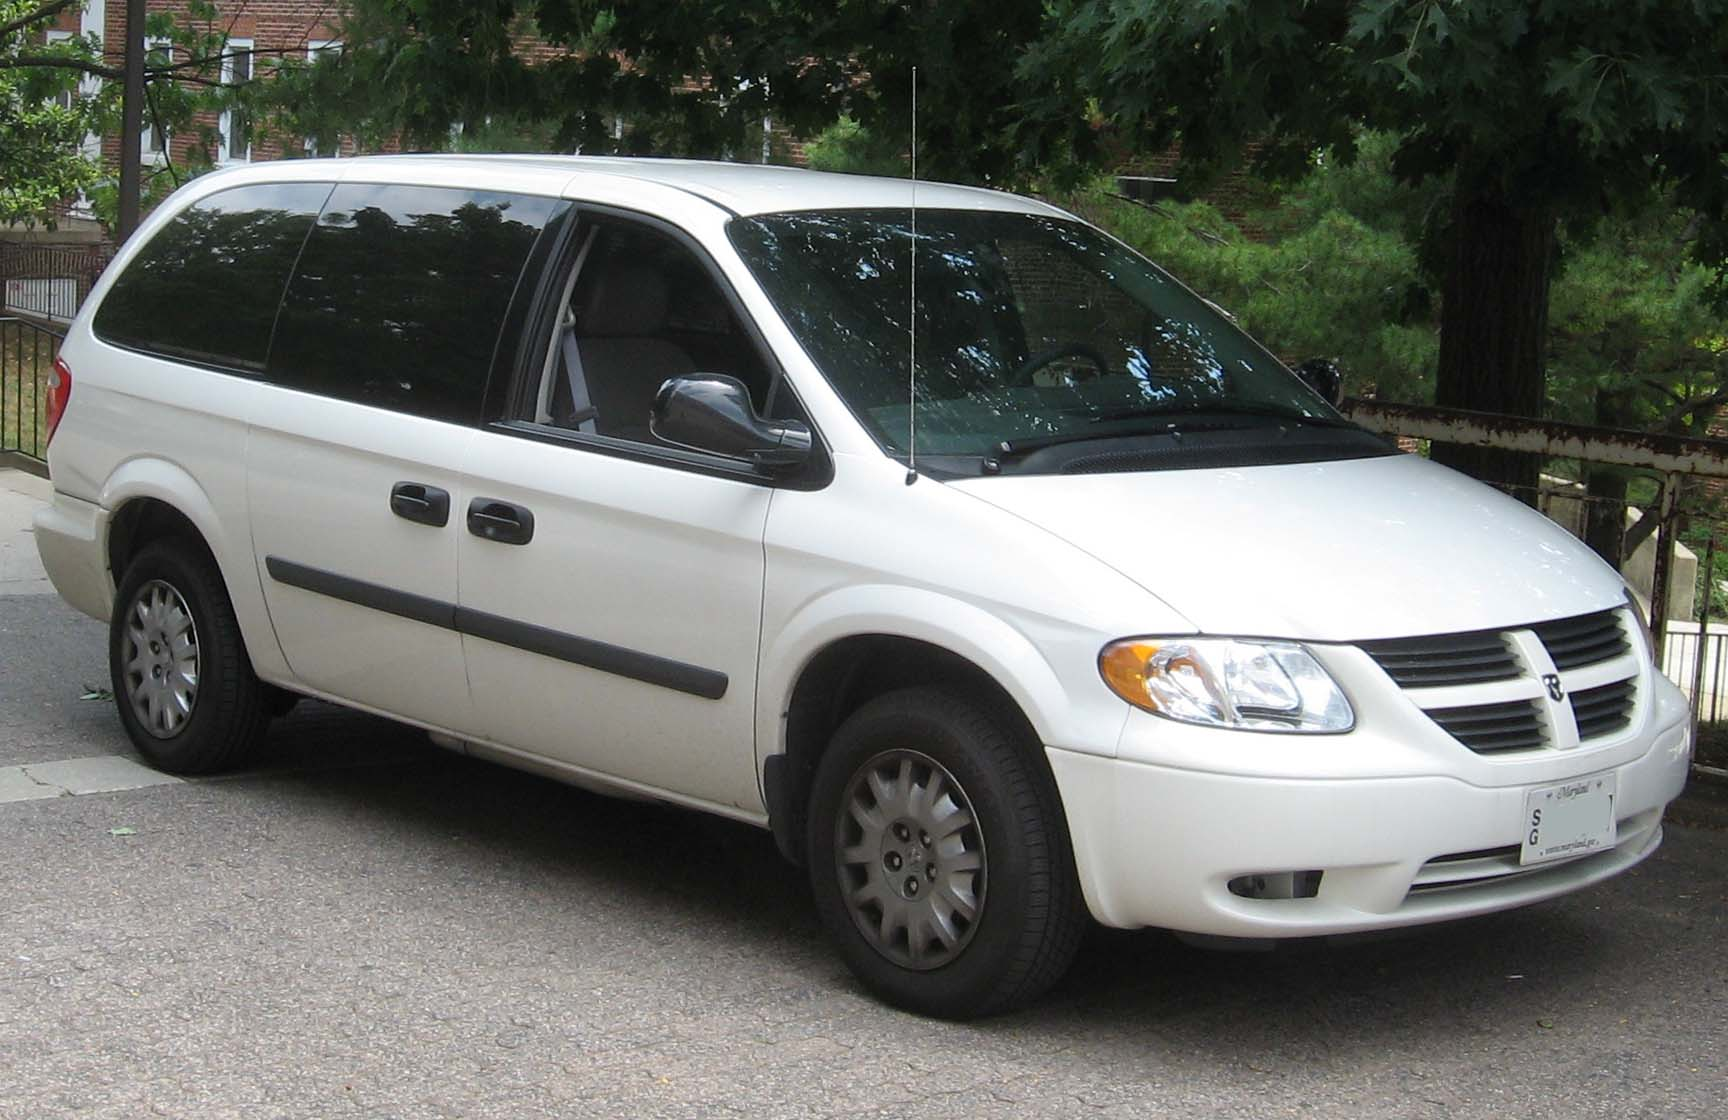 image gallery 2005 dodge caravan. Black Bedroom Furniture Sets. Home Design Ideas